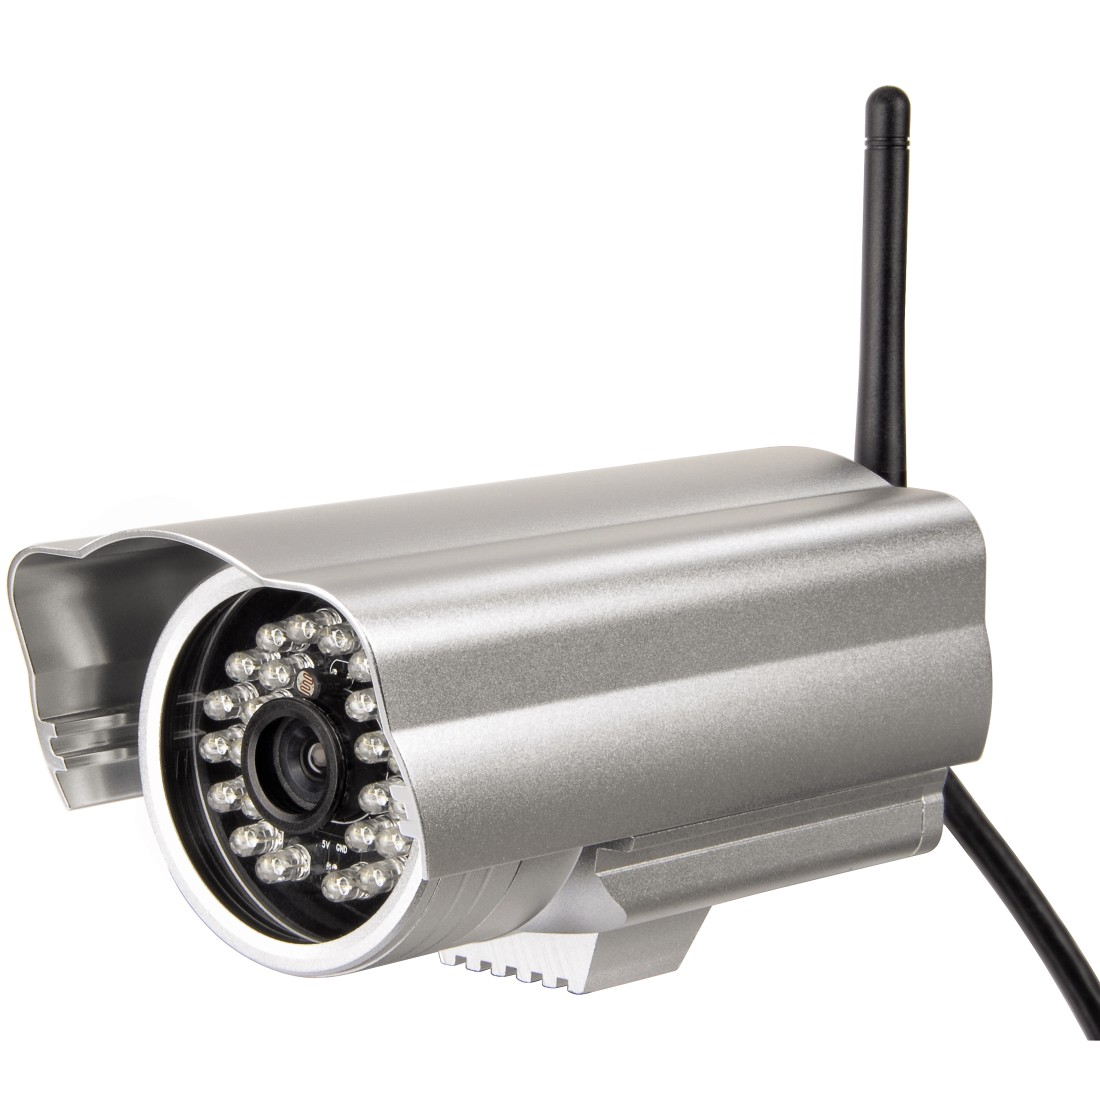 abx High-Res Image - Hama, Wireless LAN IP Camera Outdoor, 54 Mbps